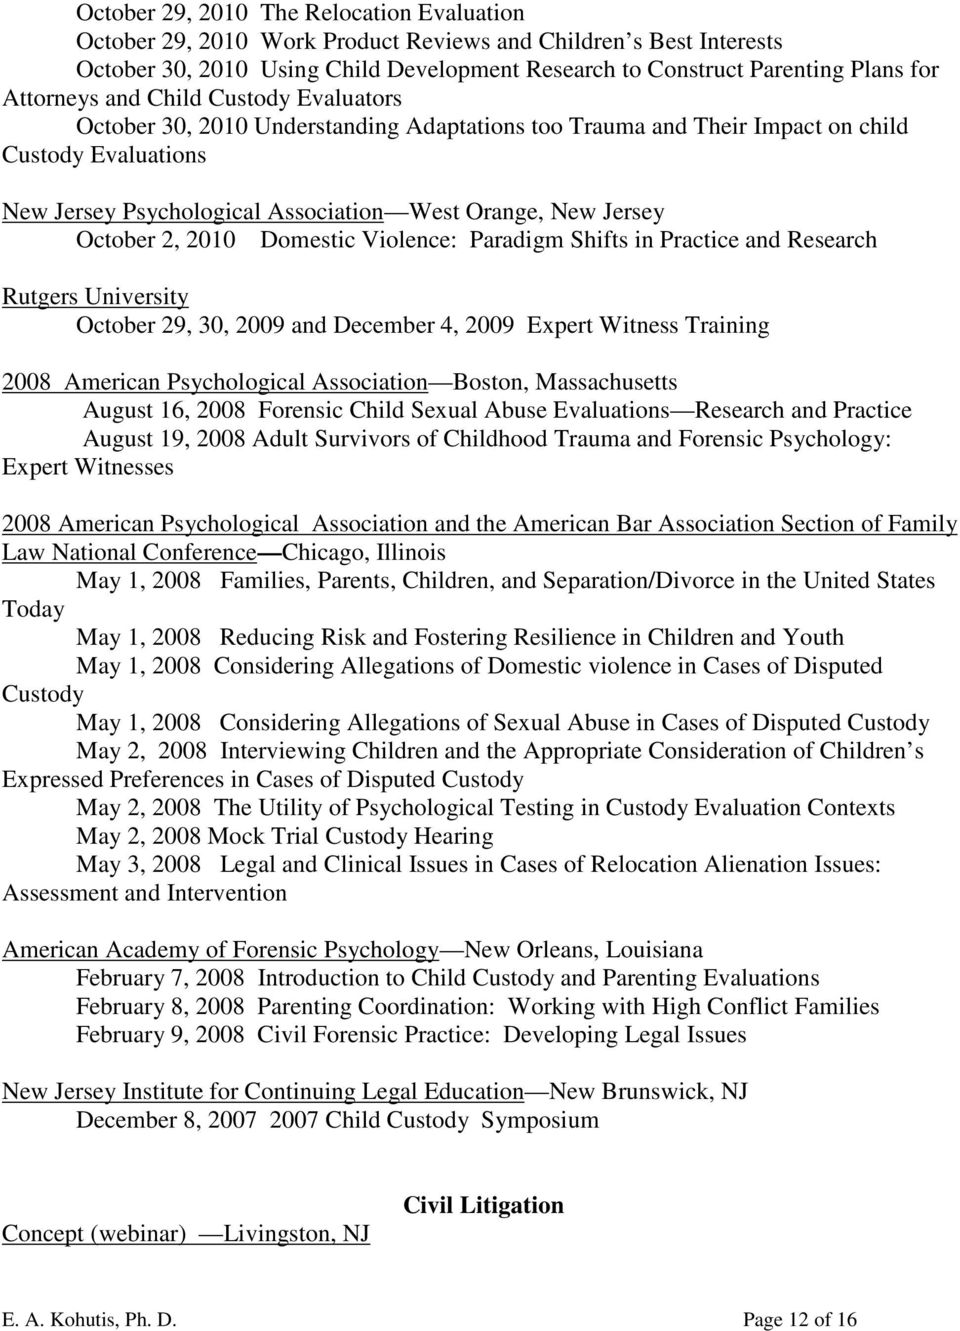 October 2, 2010 Domestic Violence: Paradigm Shifts in Practice and Research Rutgers University October 29, 30, 2009 and December 4, 2009 Expert Witness Training 2008 American Psychological